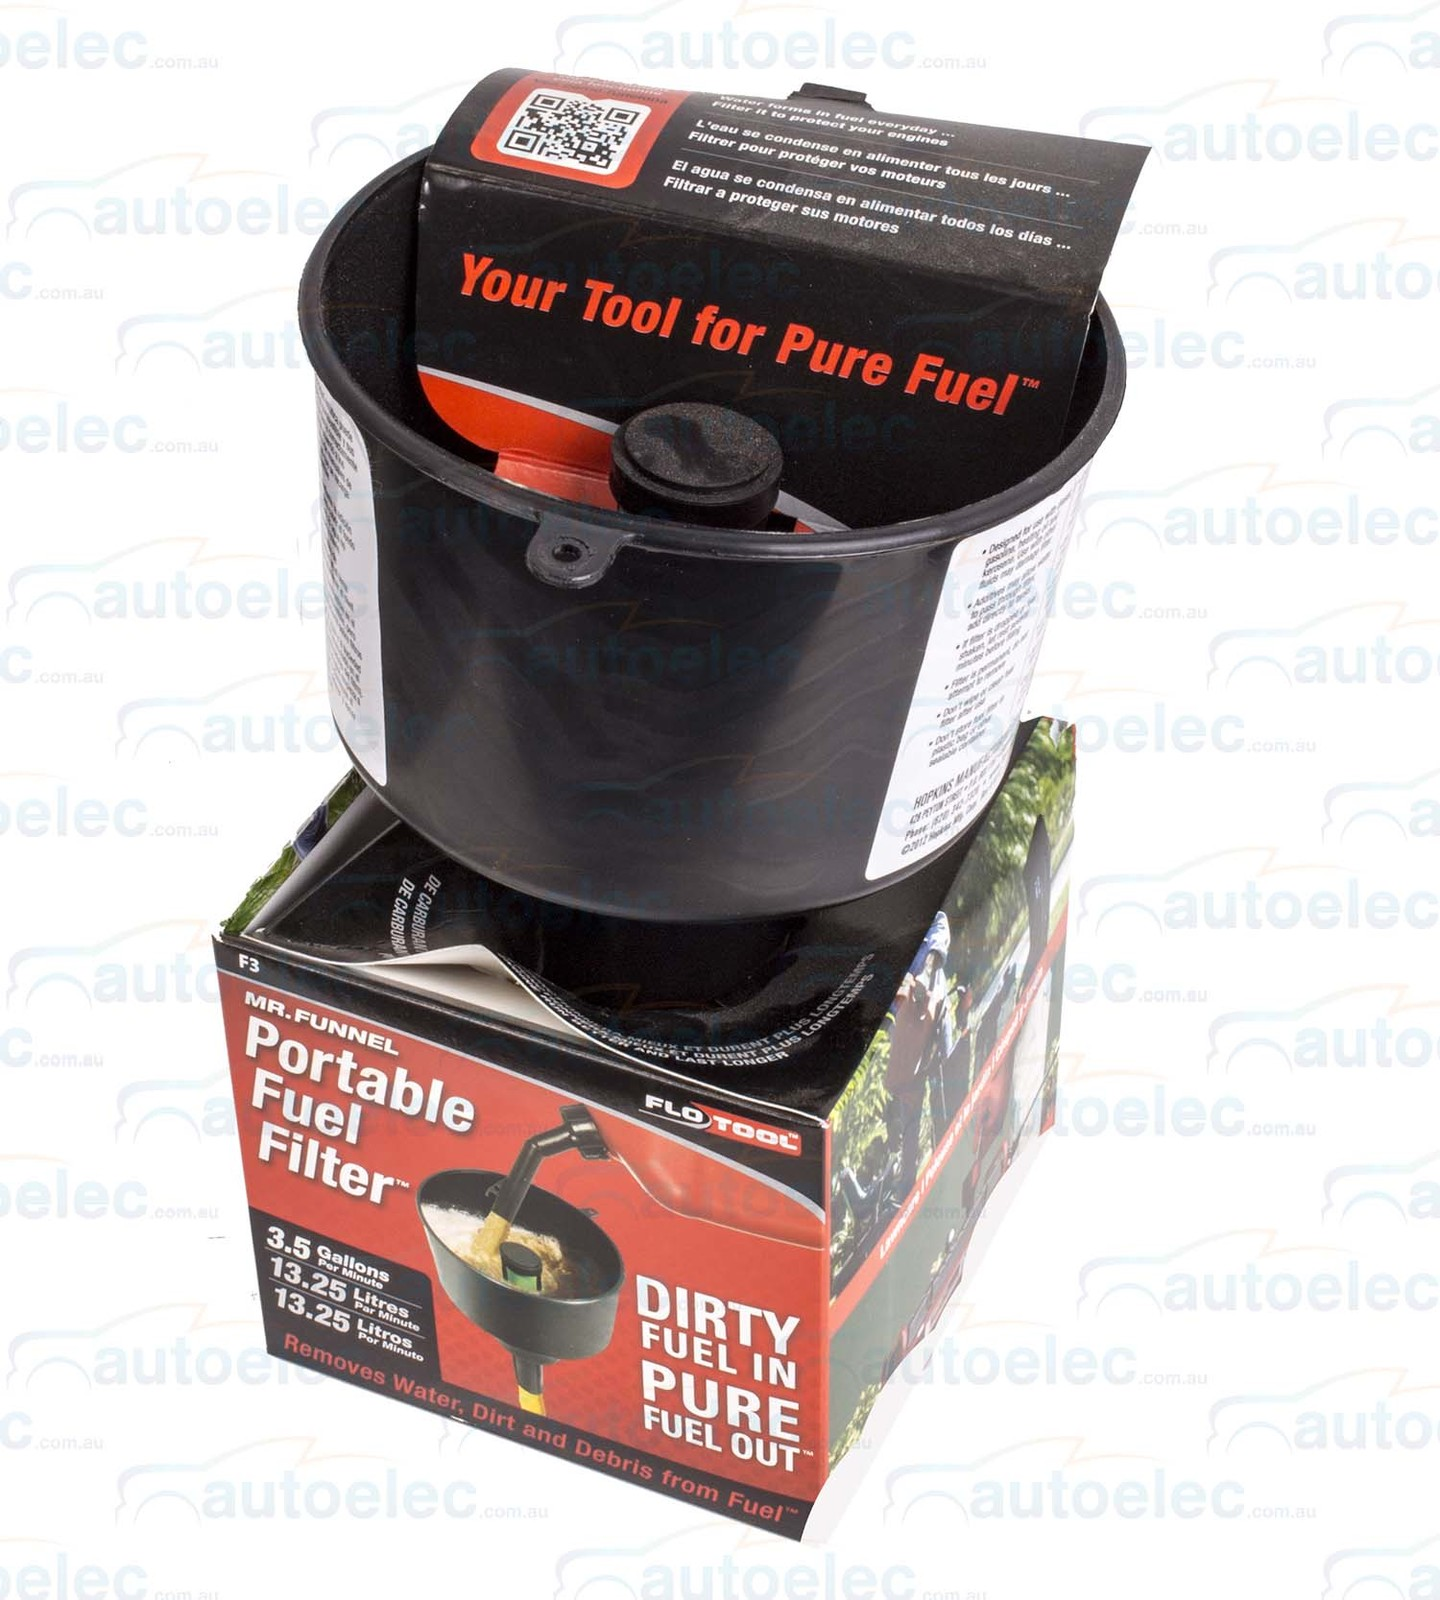 hight resolution of mr funnel portable fuel filter removes water petrol mower